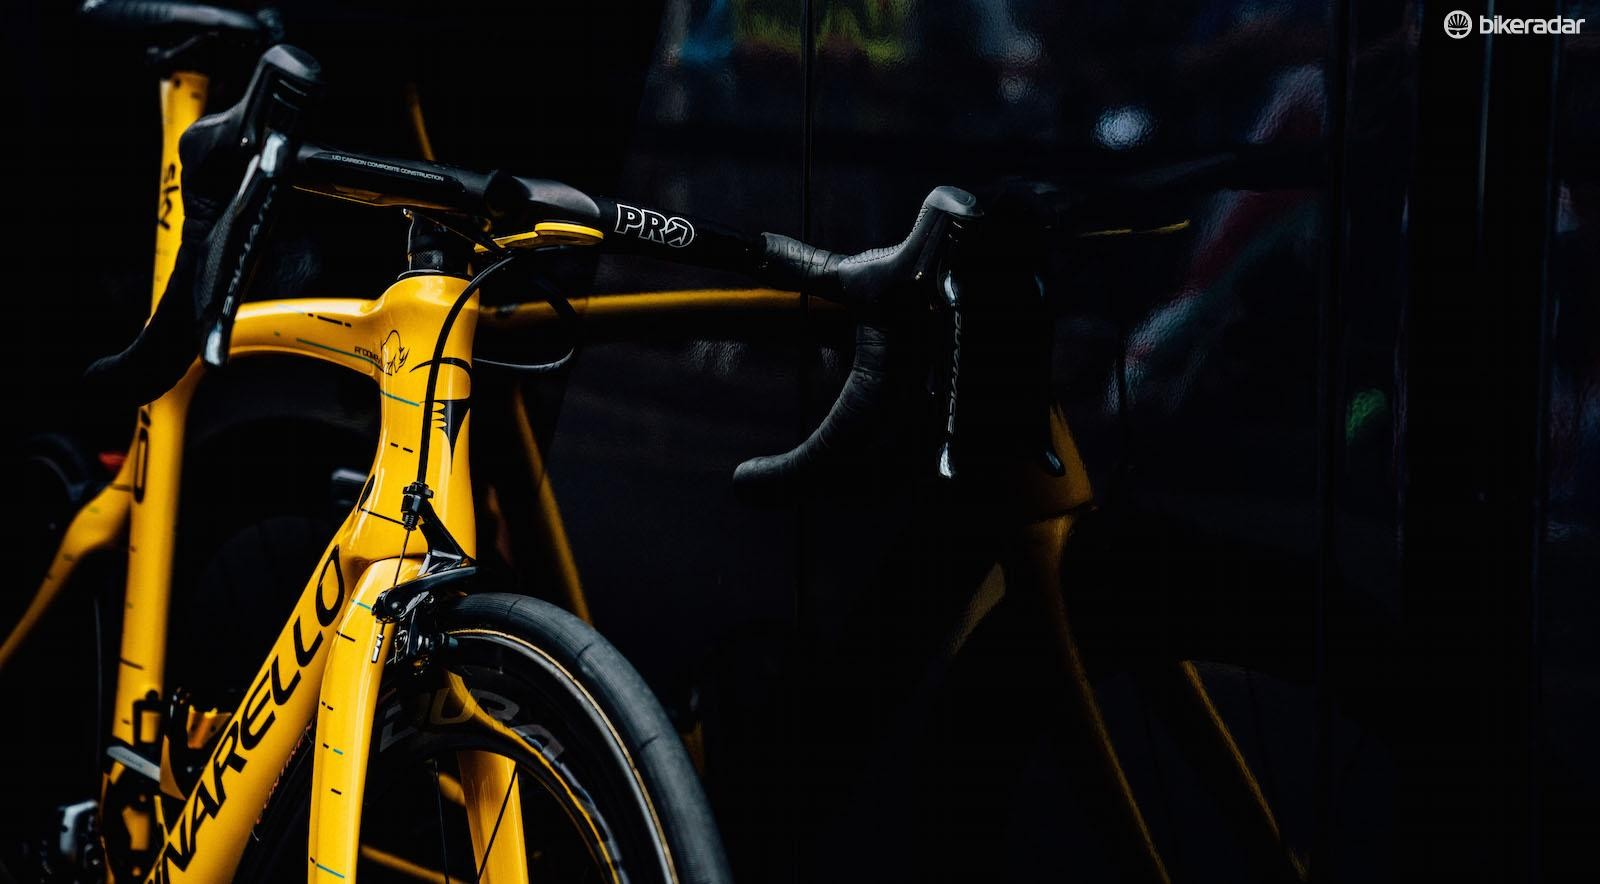 The Dogma has the blue and black dot-dash design as featured on the team jersey and equipment